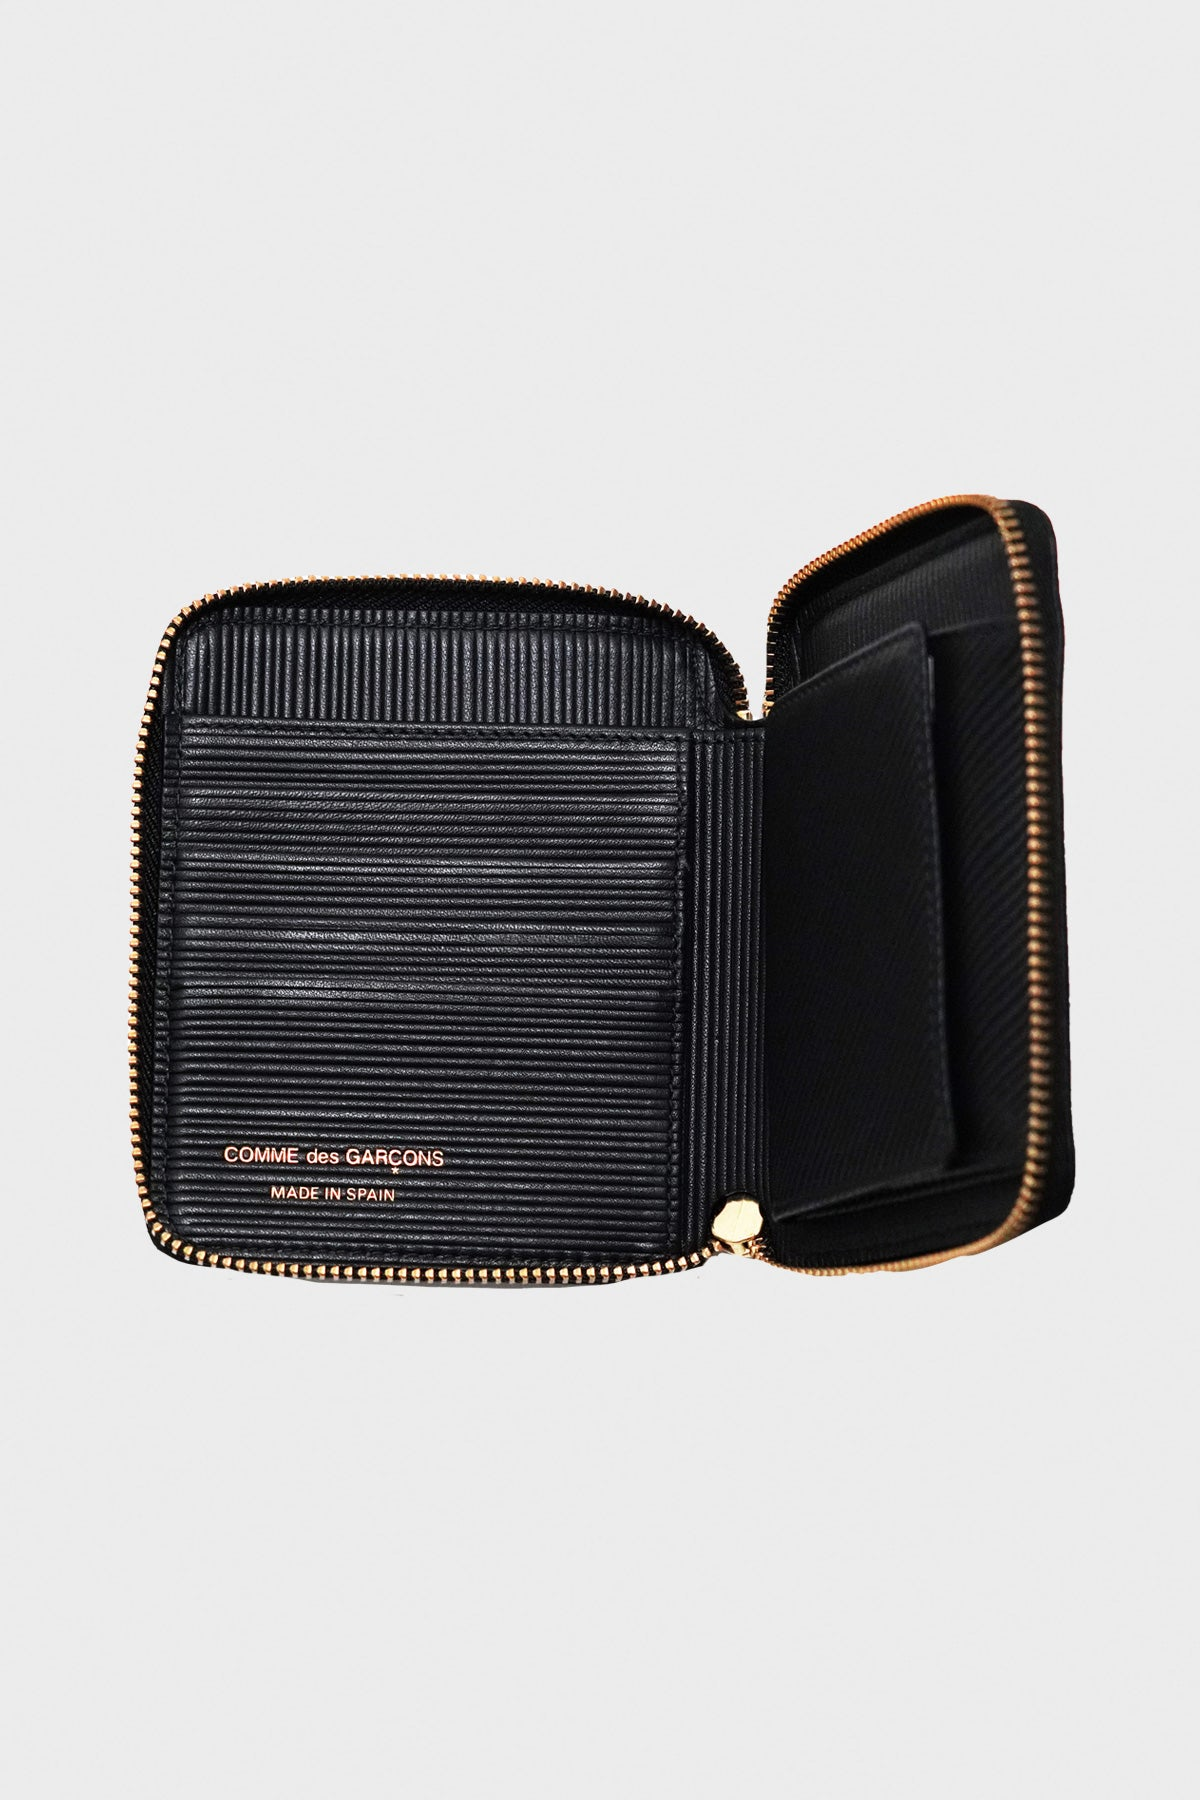 Comme des Garçons WALLET - Intersection Wallet - Black - Canoe Club